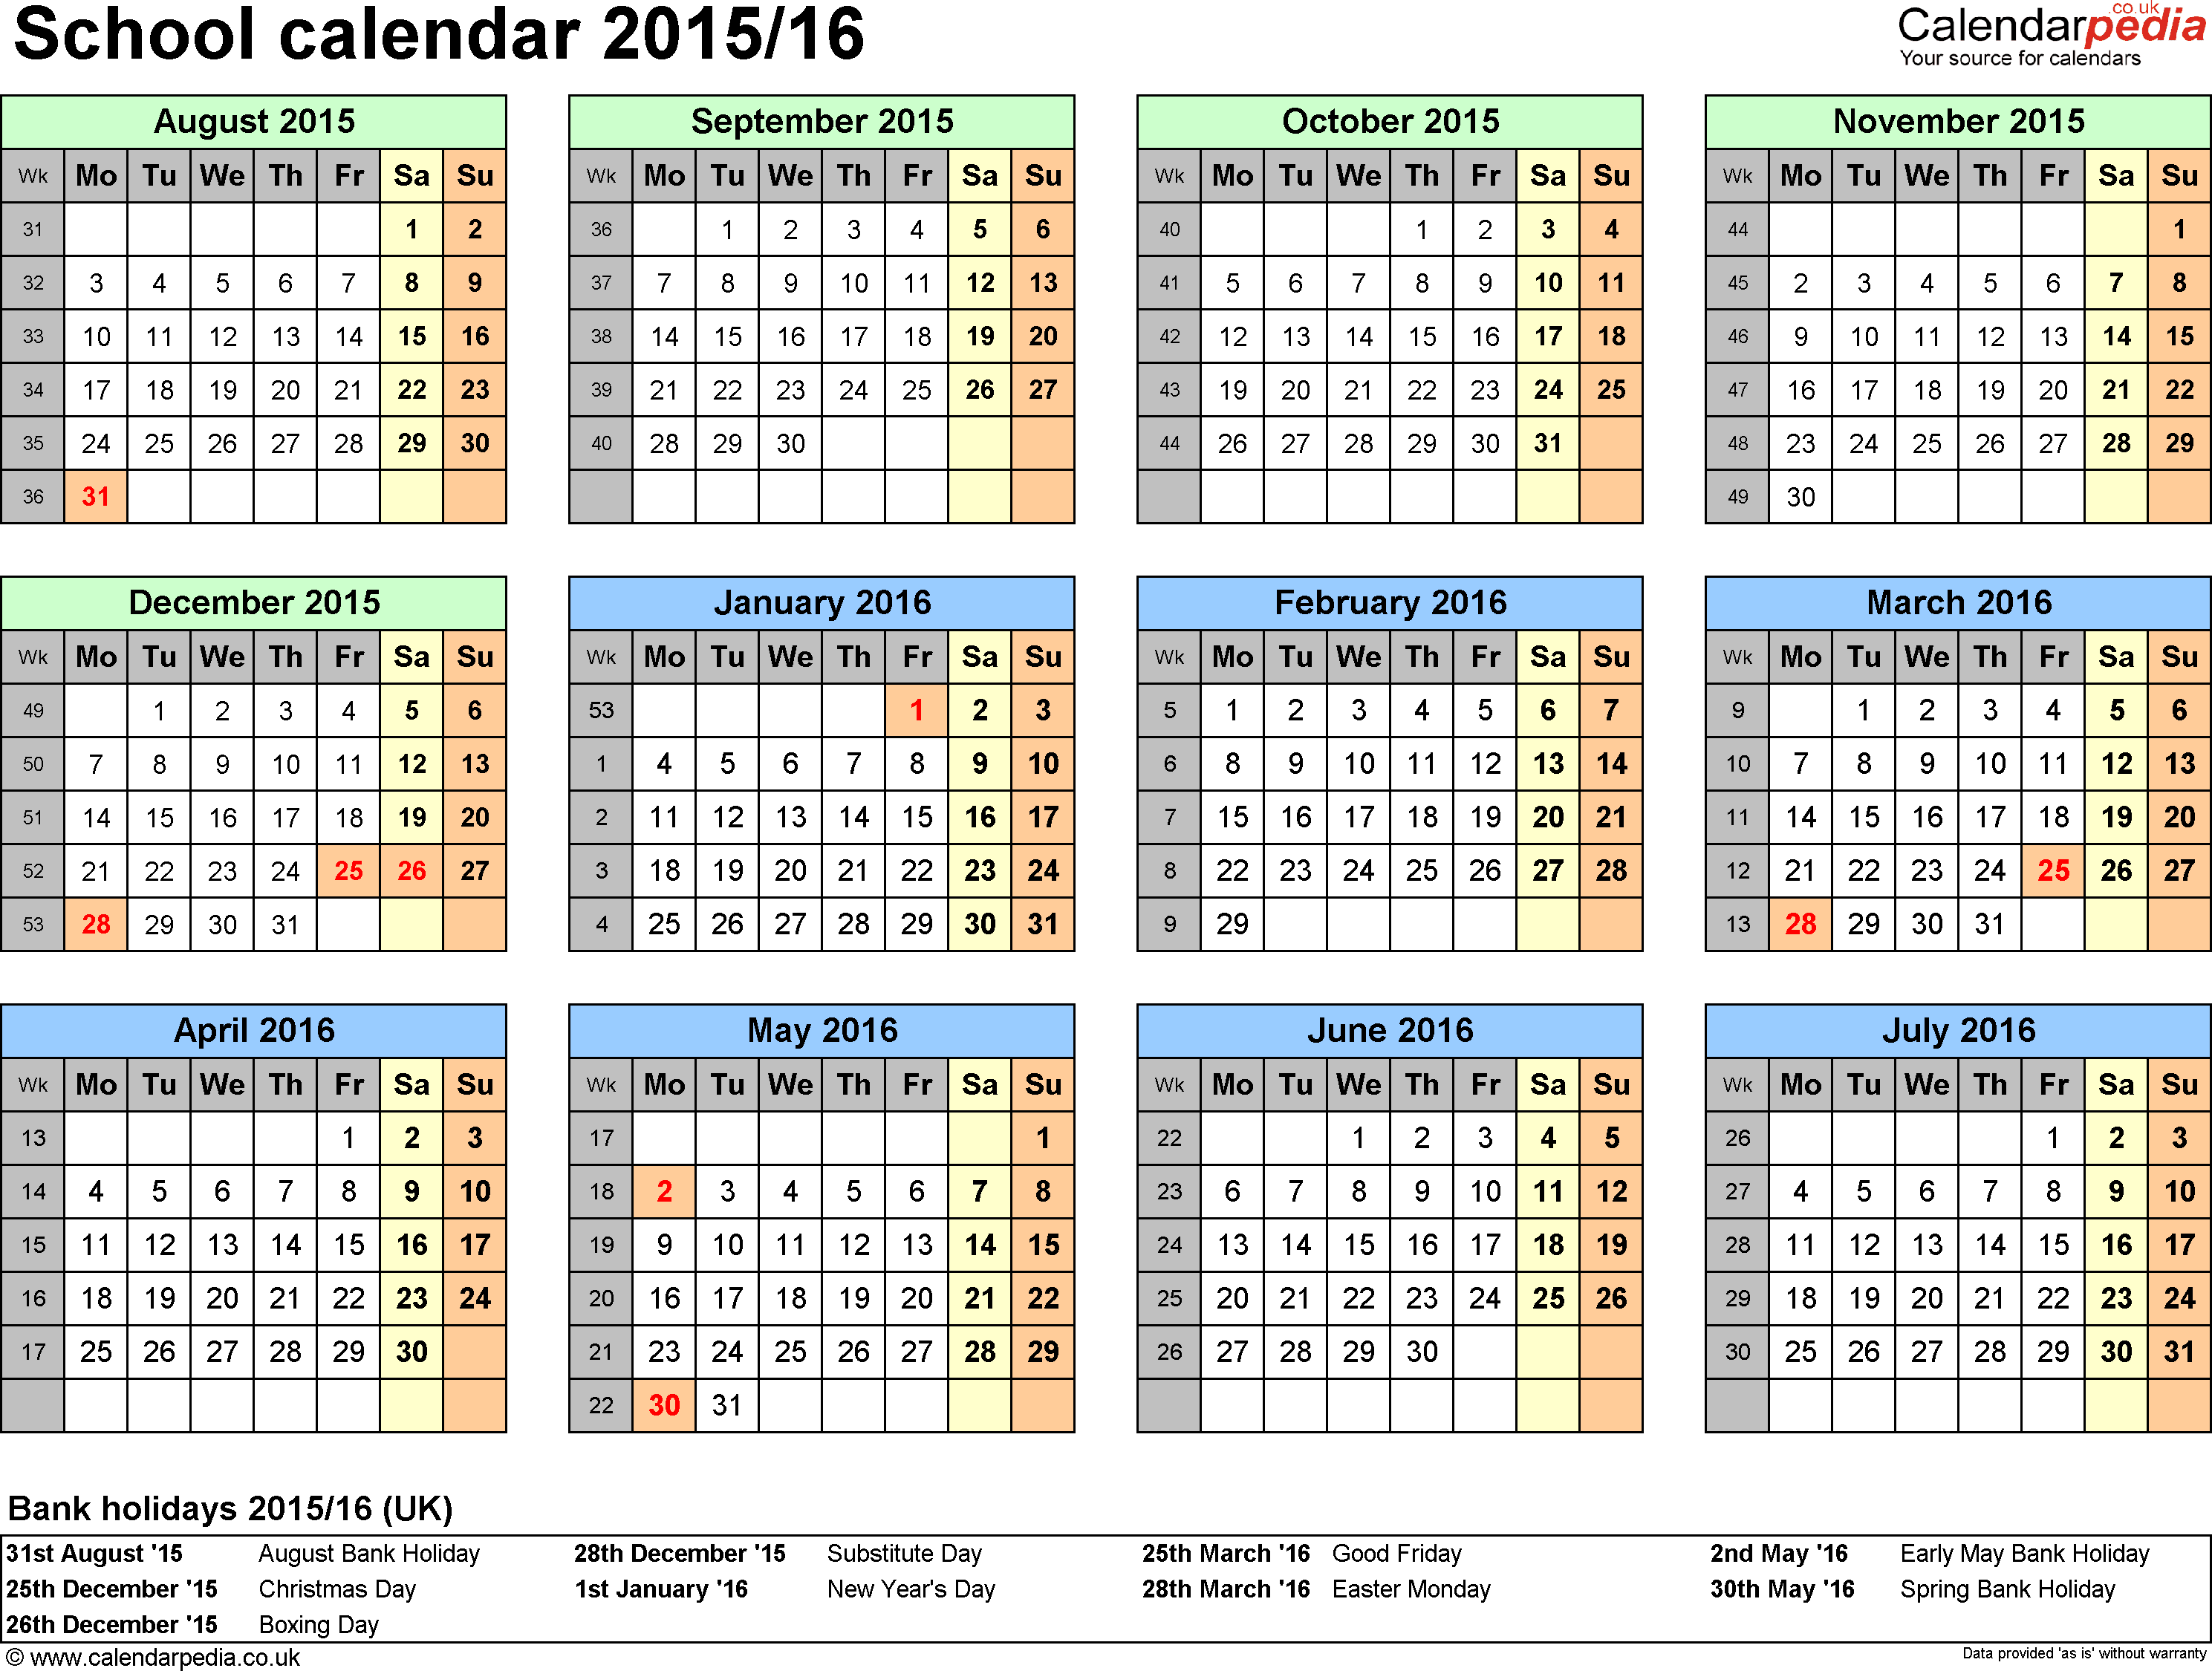 School Timetables 2015 School Calendar 2015/16 For